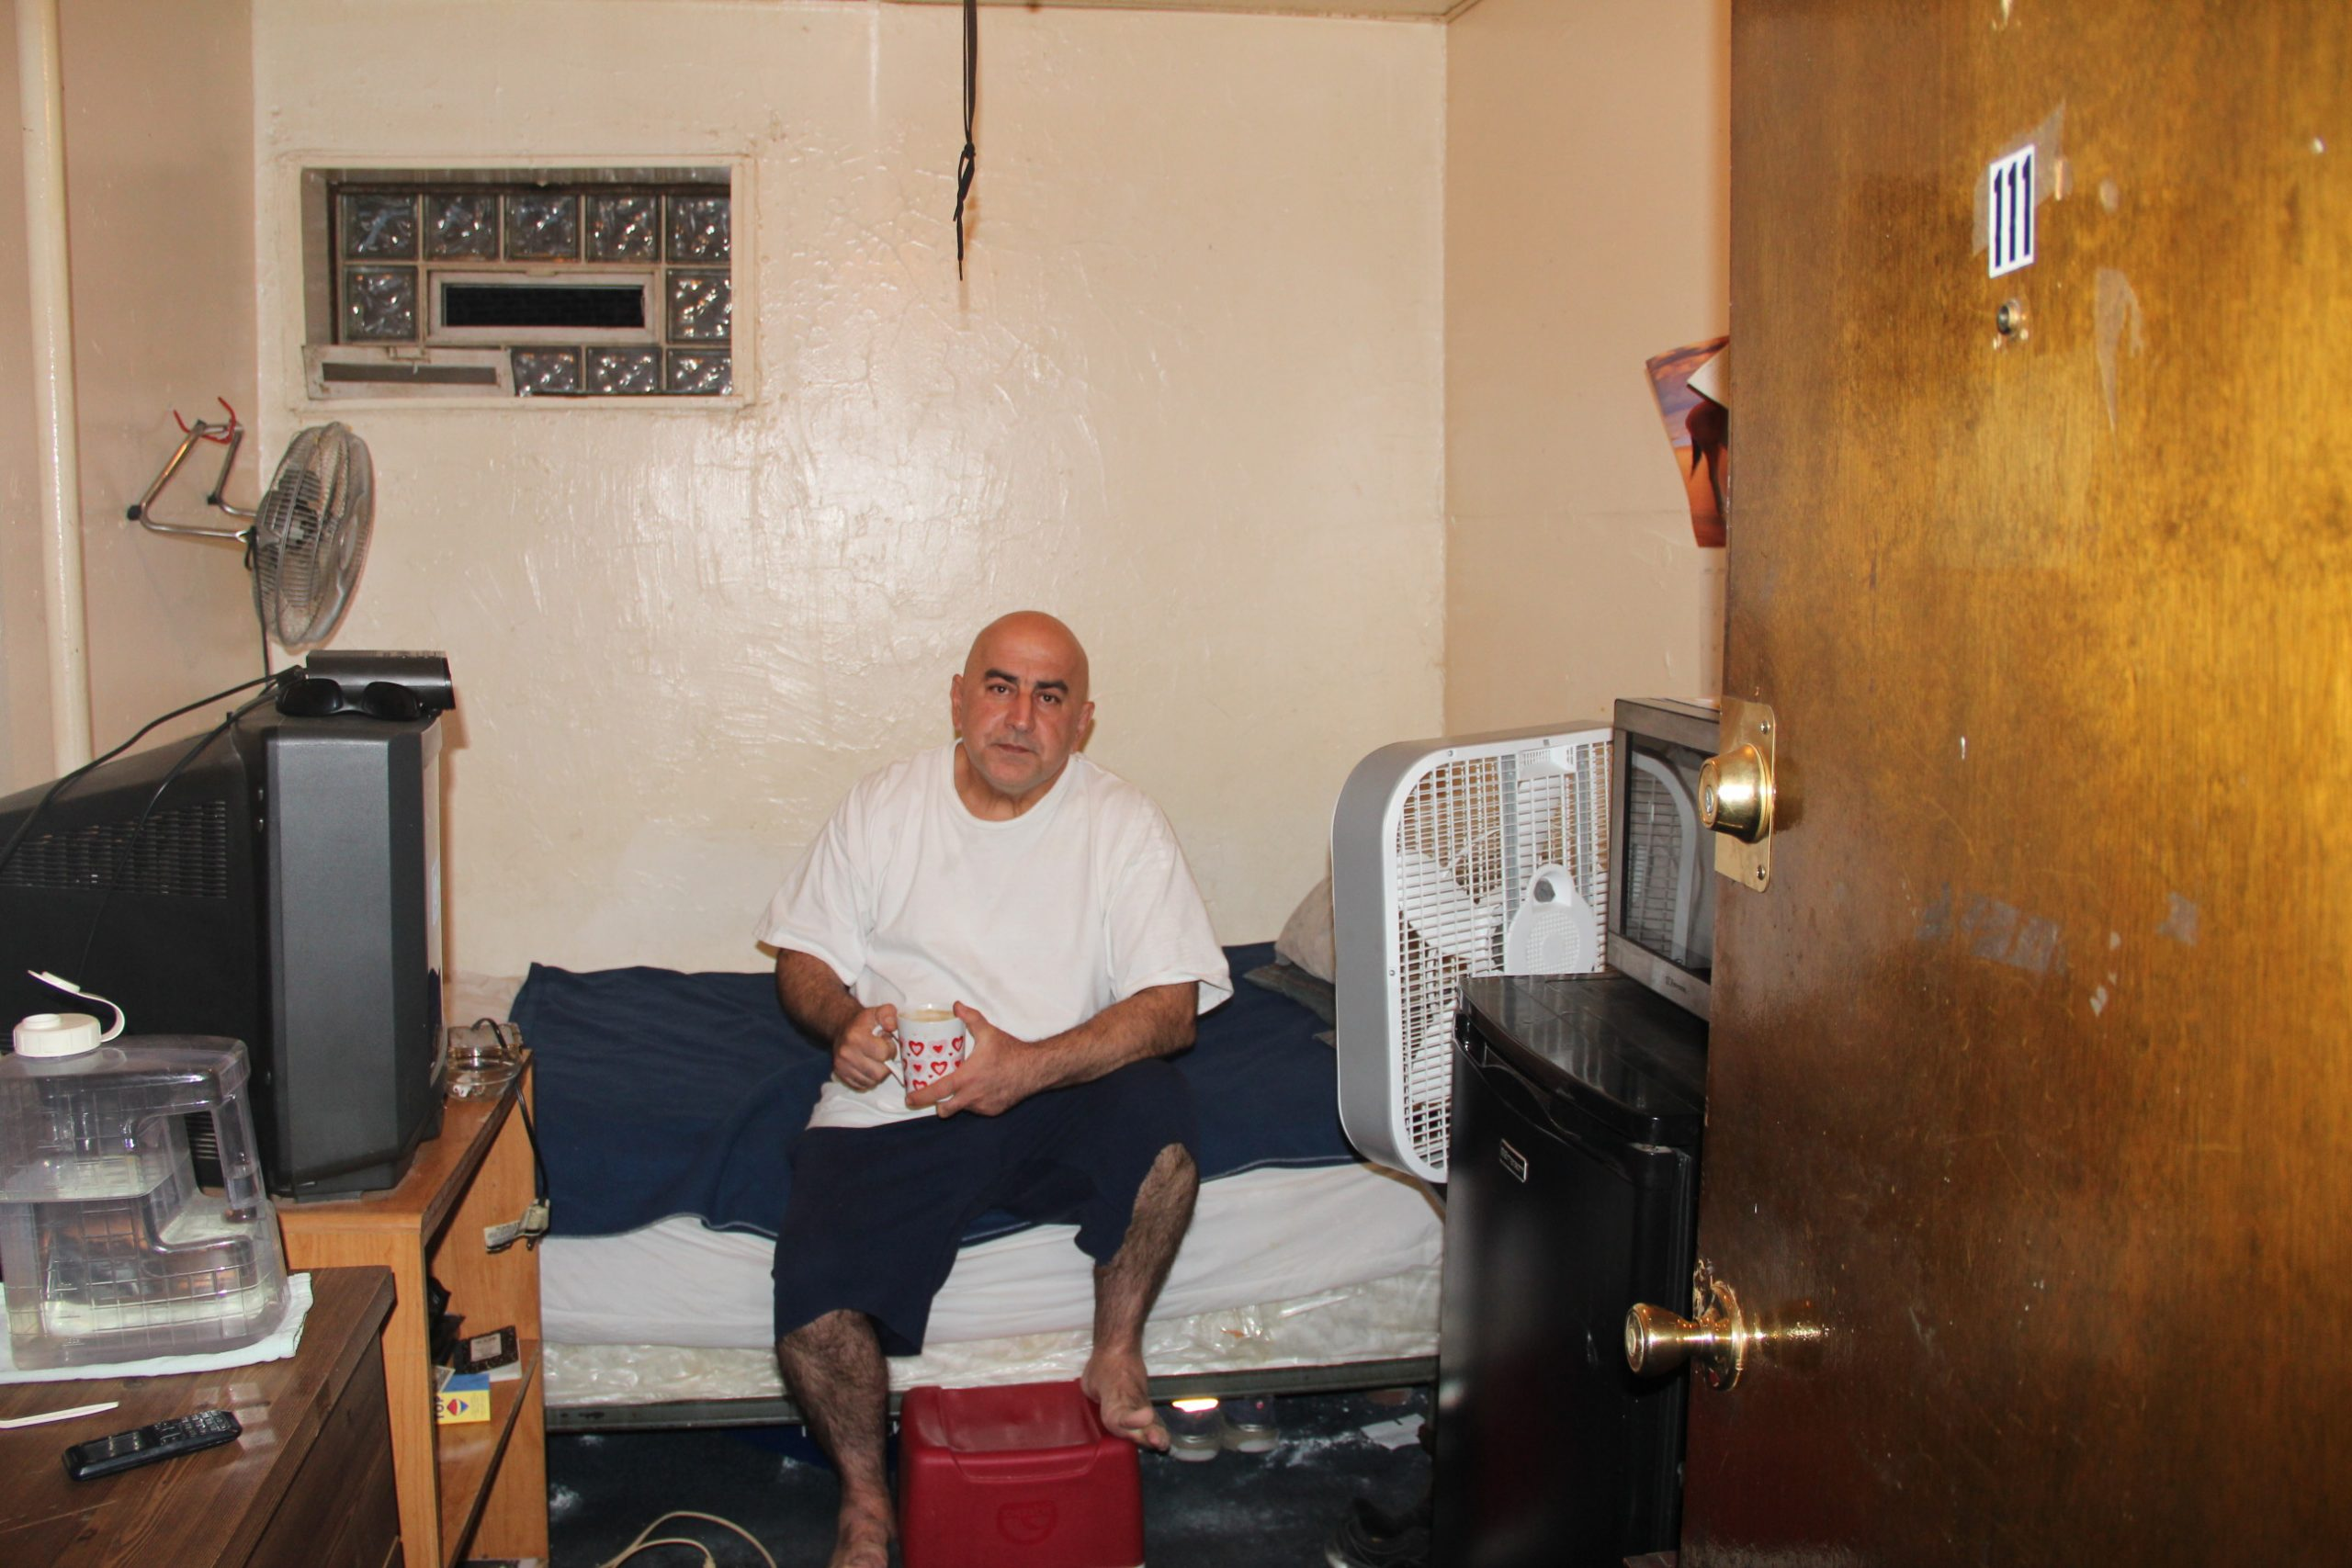 Resident Henri Khodabakhsh says mice and cockroaches are a constant problem in his first-floor room.